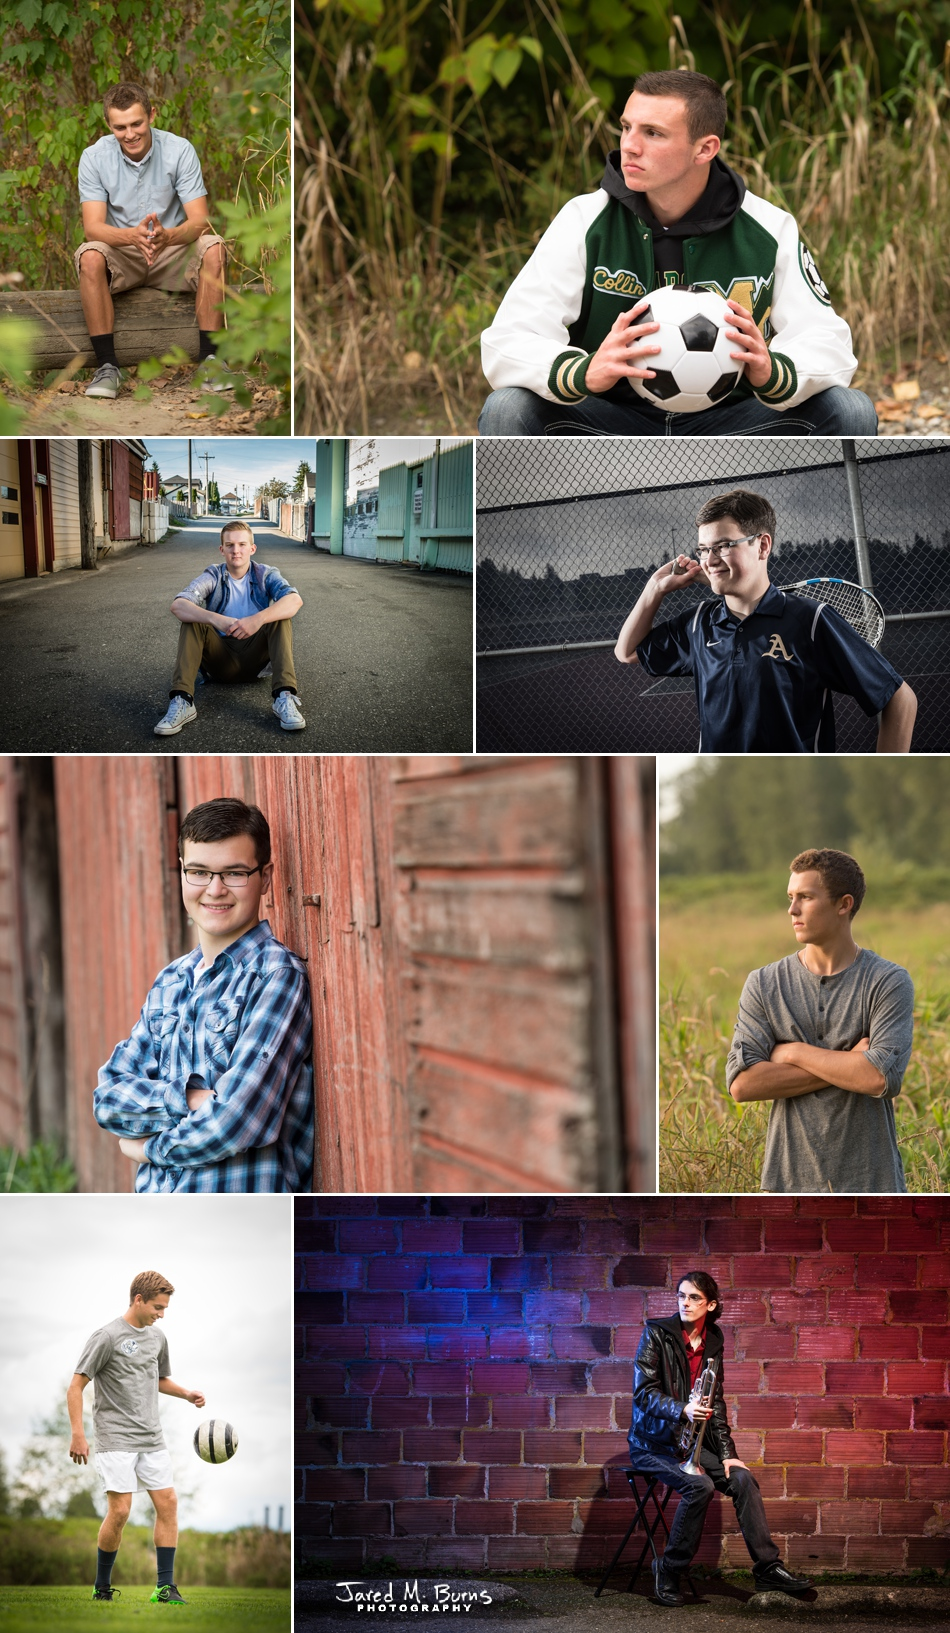 Jared M Burns Photography - Snohomish Mill Creek Senior Woodinville Senior Pictures - Class of 2018 (3).jpg